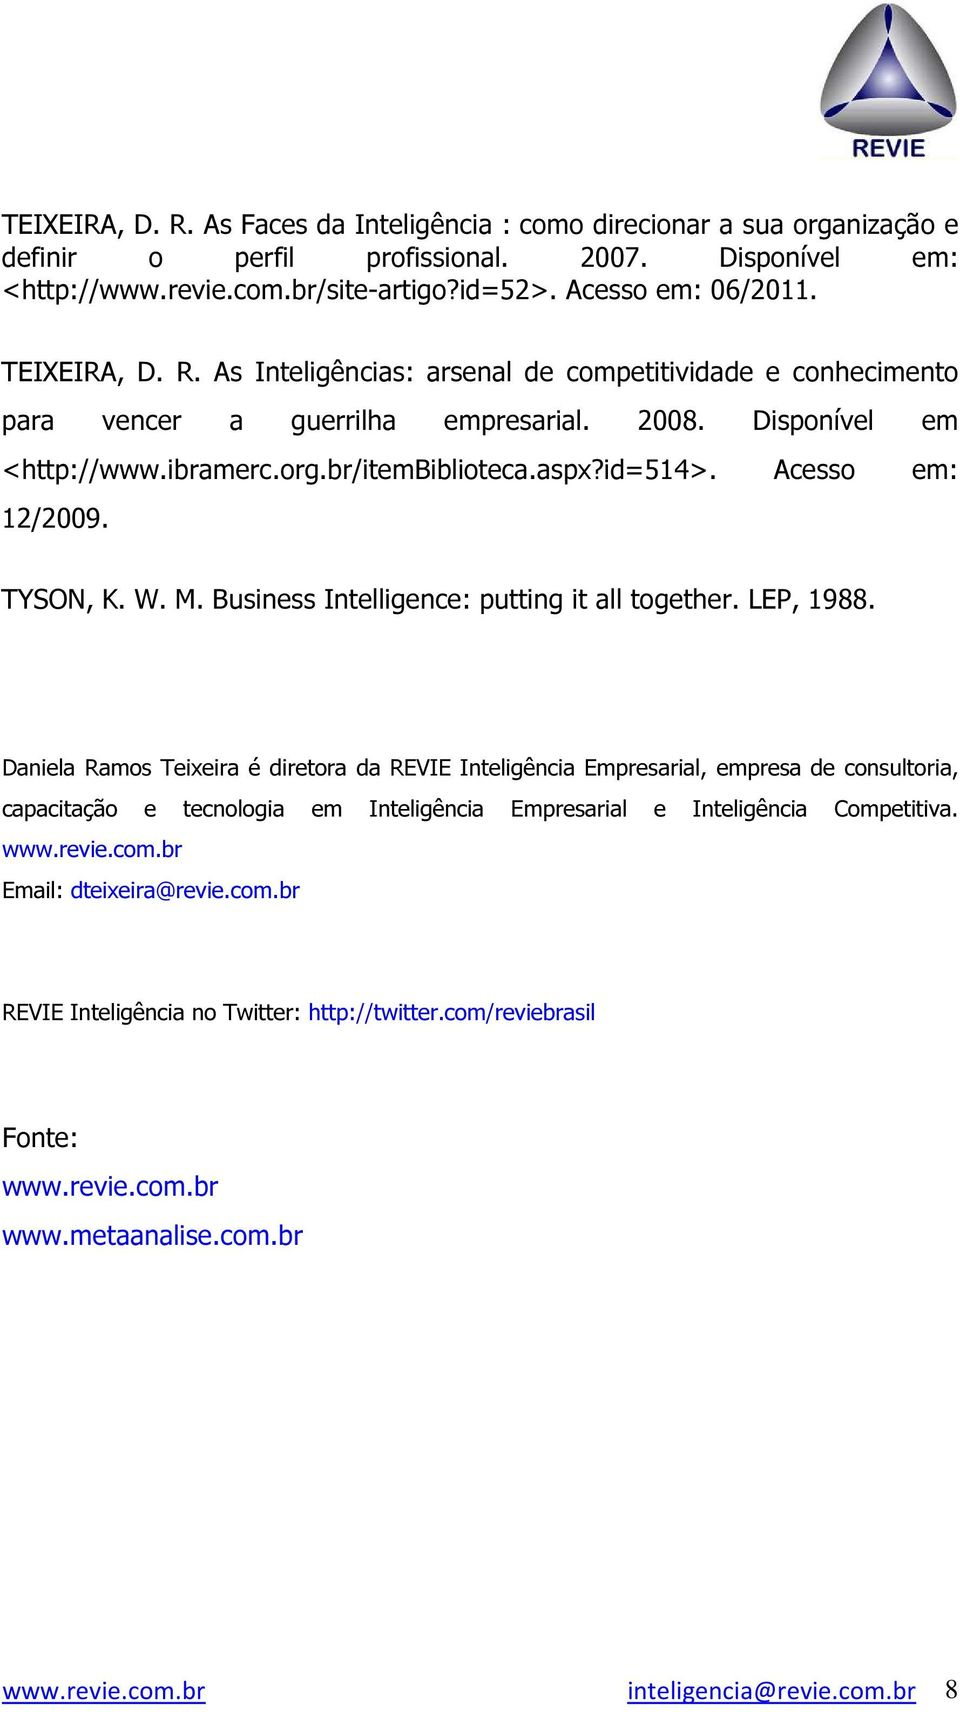 Acesso em: 12/2009. TYSON, K. W. M. Business Intelligence: putting it all together. LEP, 1988.